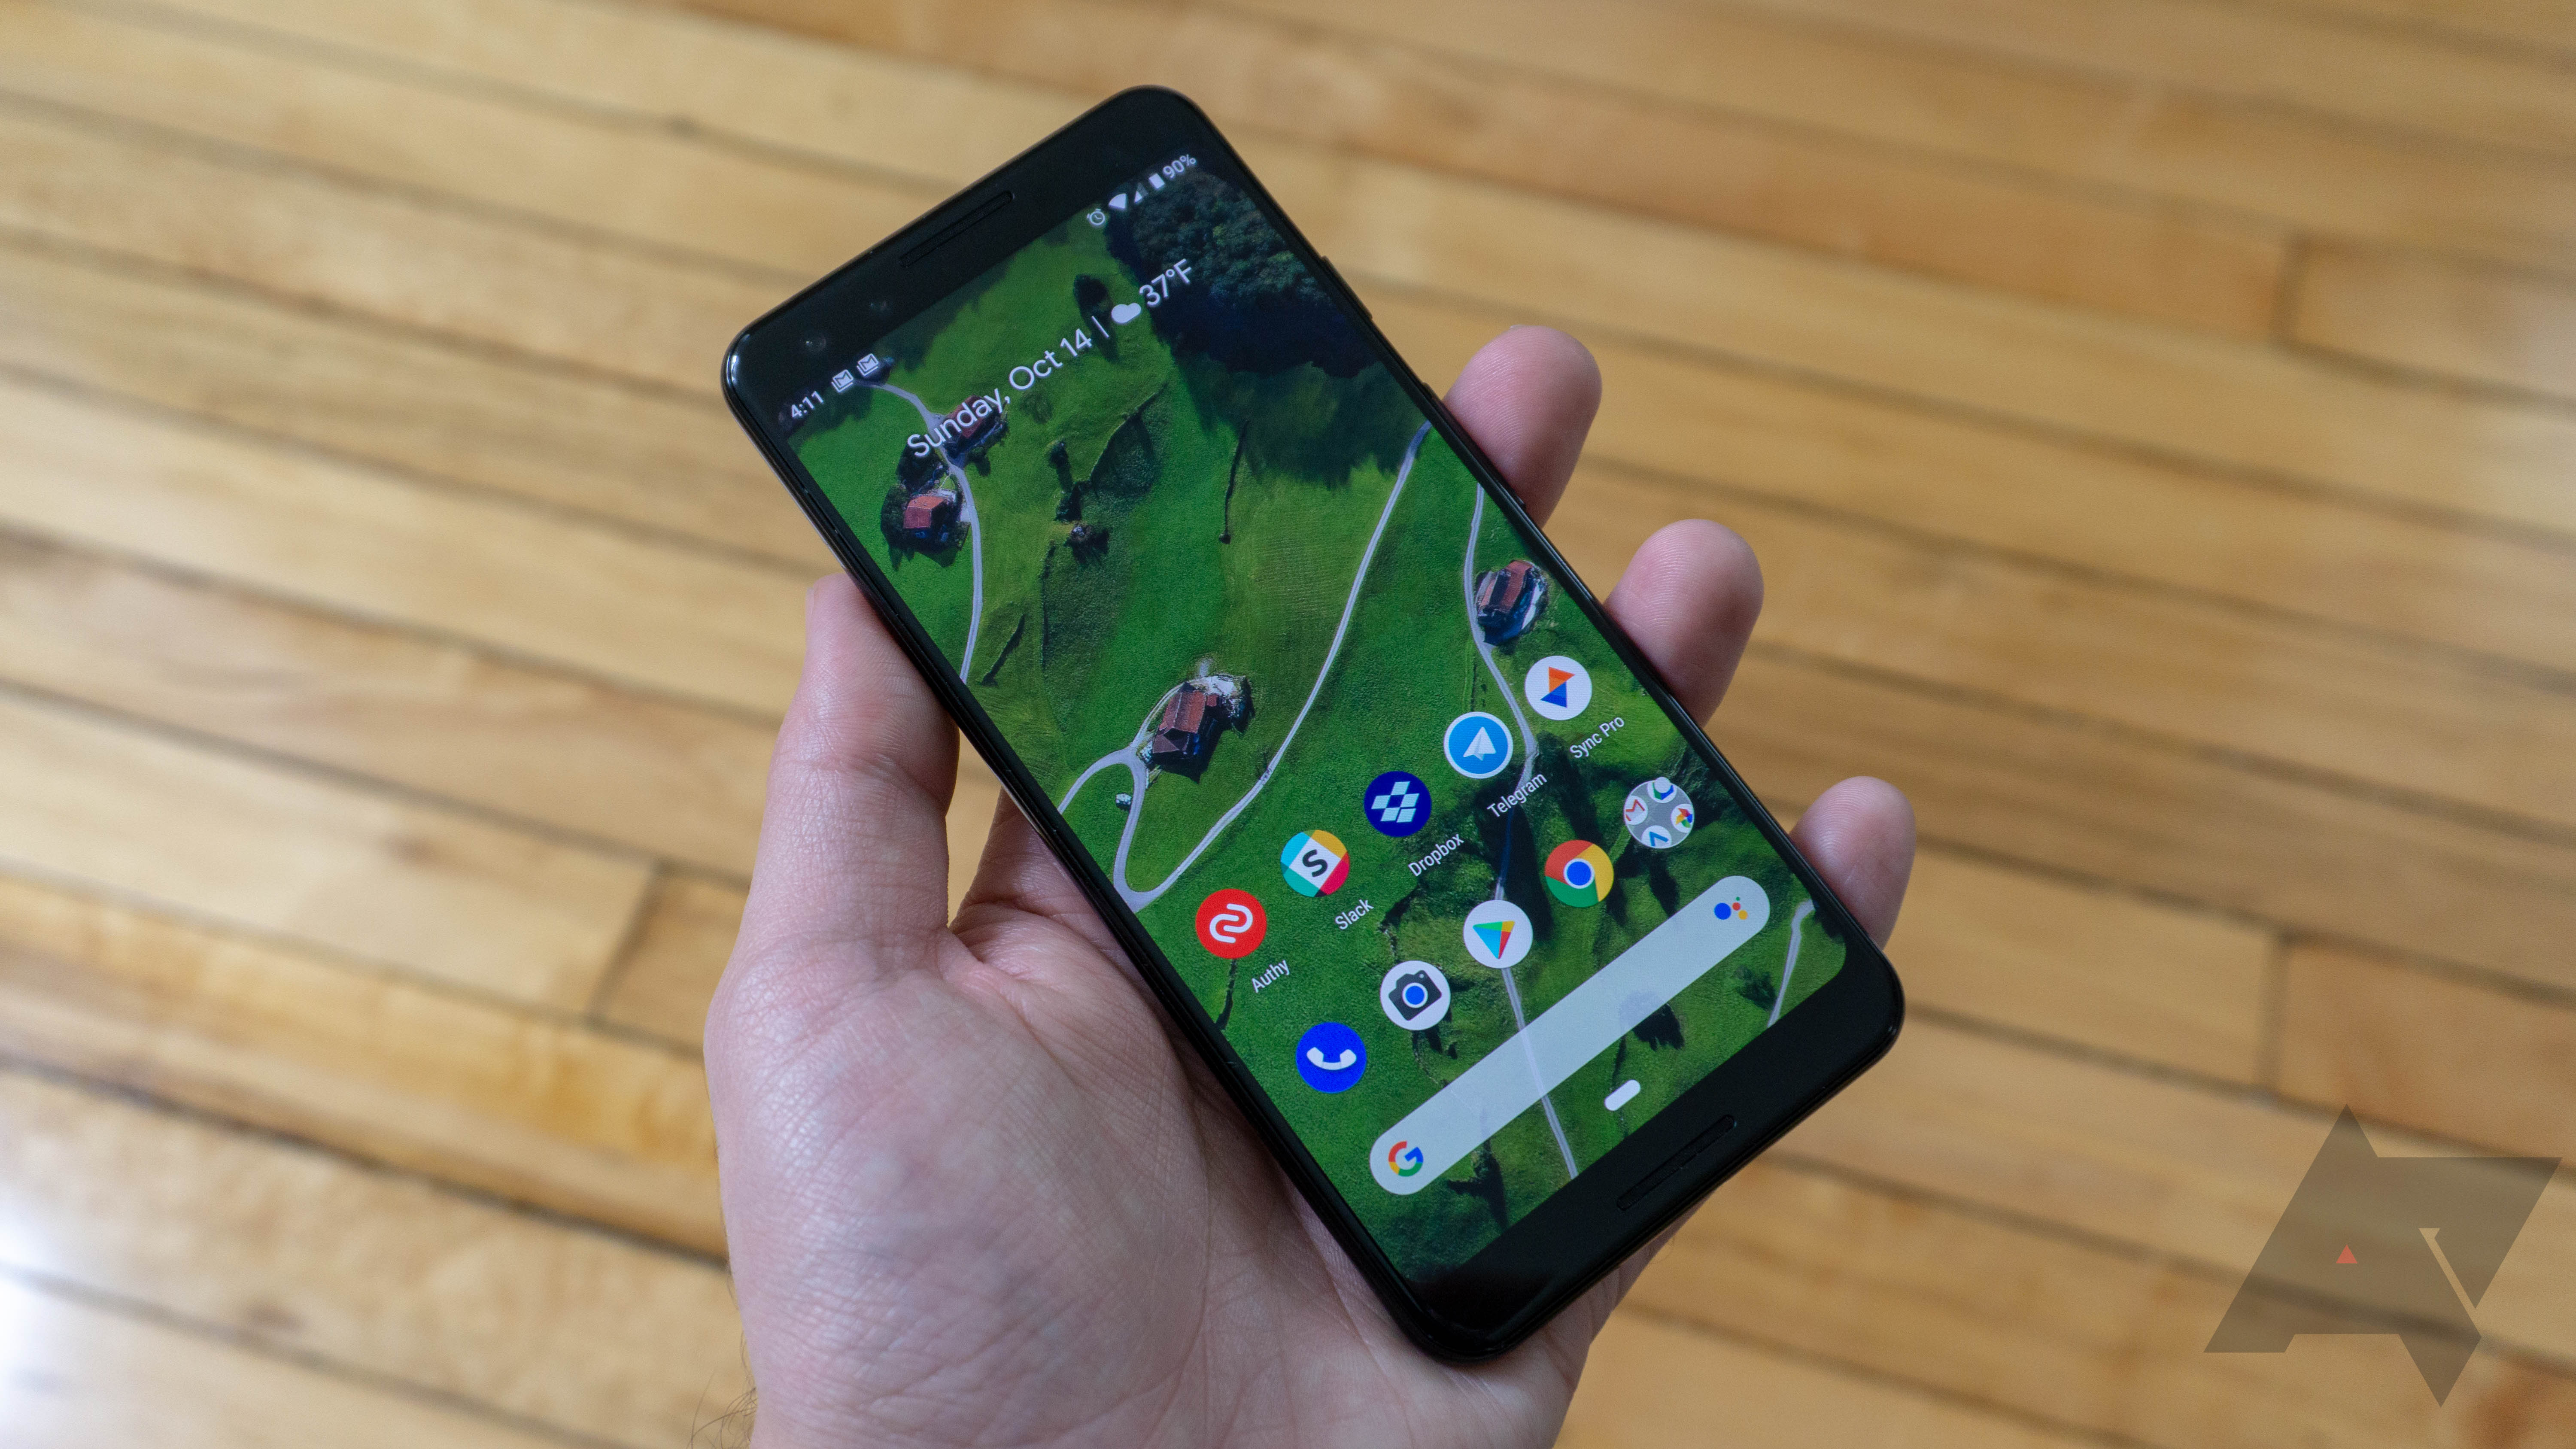 Prime Day Pixel deal: Pixel 3 for $539 on Amazon